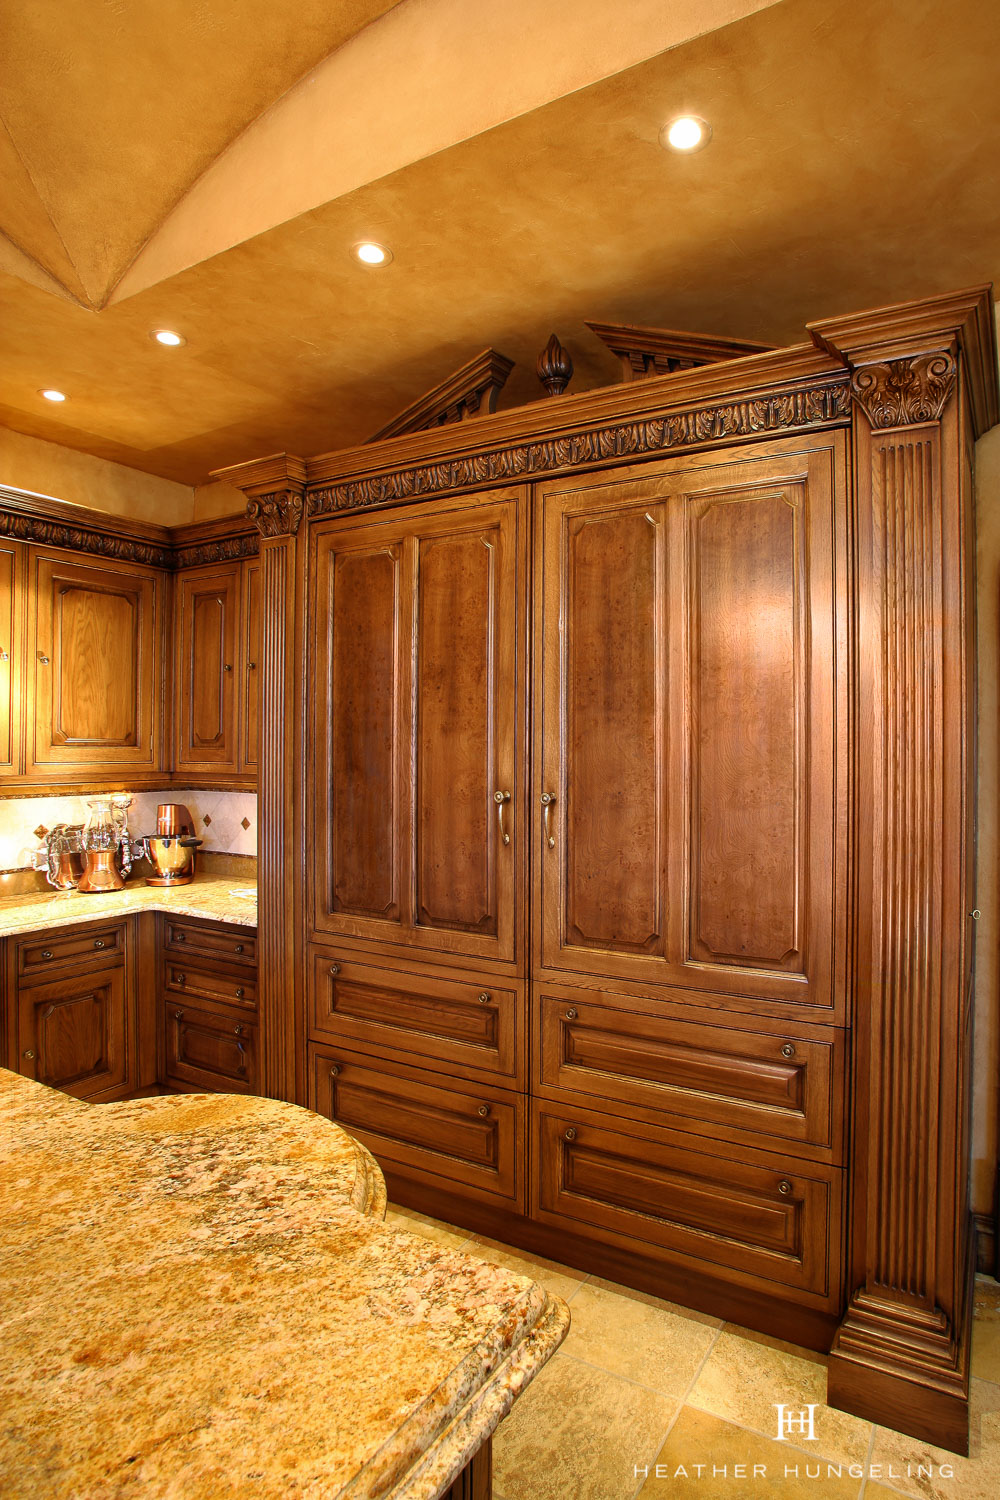 Double paneled Sub Zero refrigerator and freezers are dressed up with fluted pilasters and a pediment in this Clive Christian kitchen.